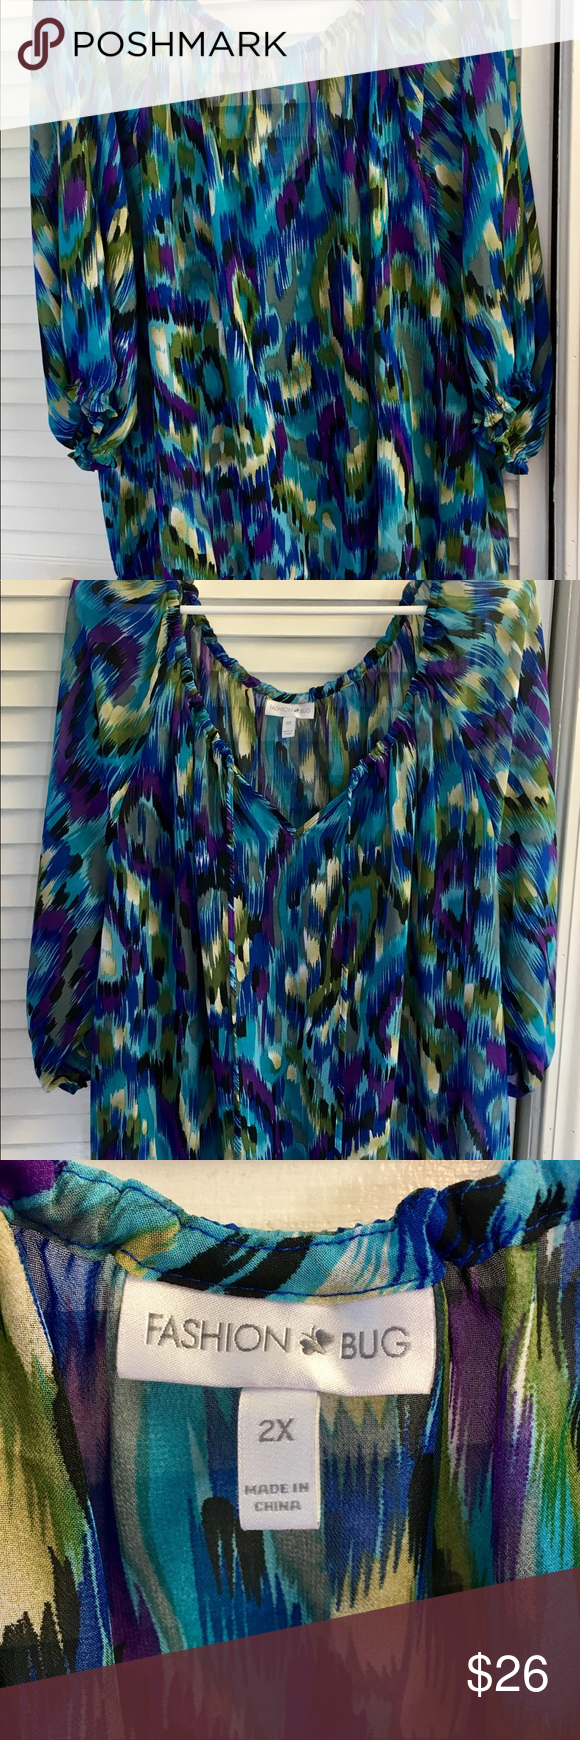 NWOT Blue Purple Fashion Bug Peacock Plus Size Top NWOT Blue Purple Fashion Bug …